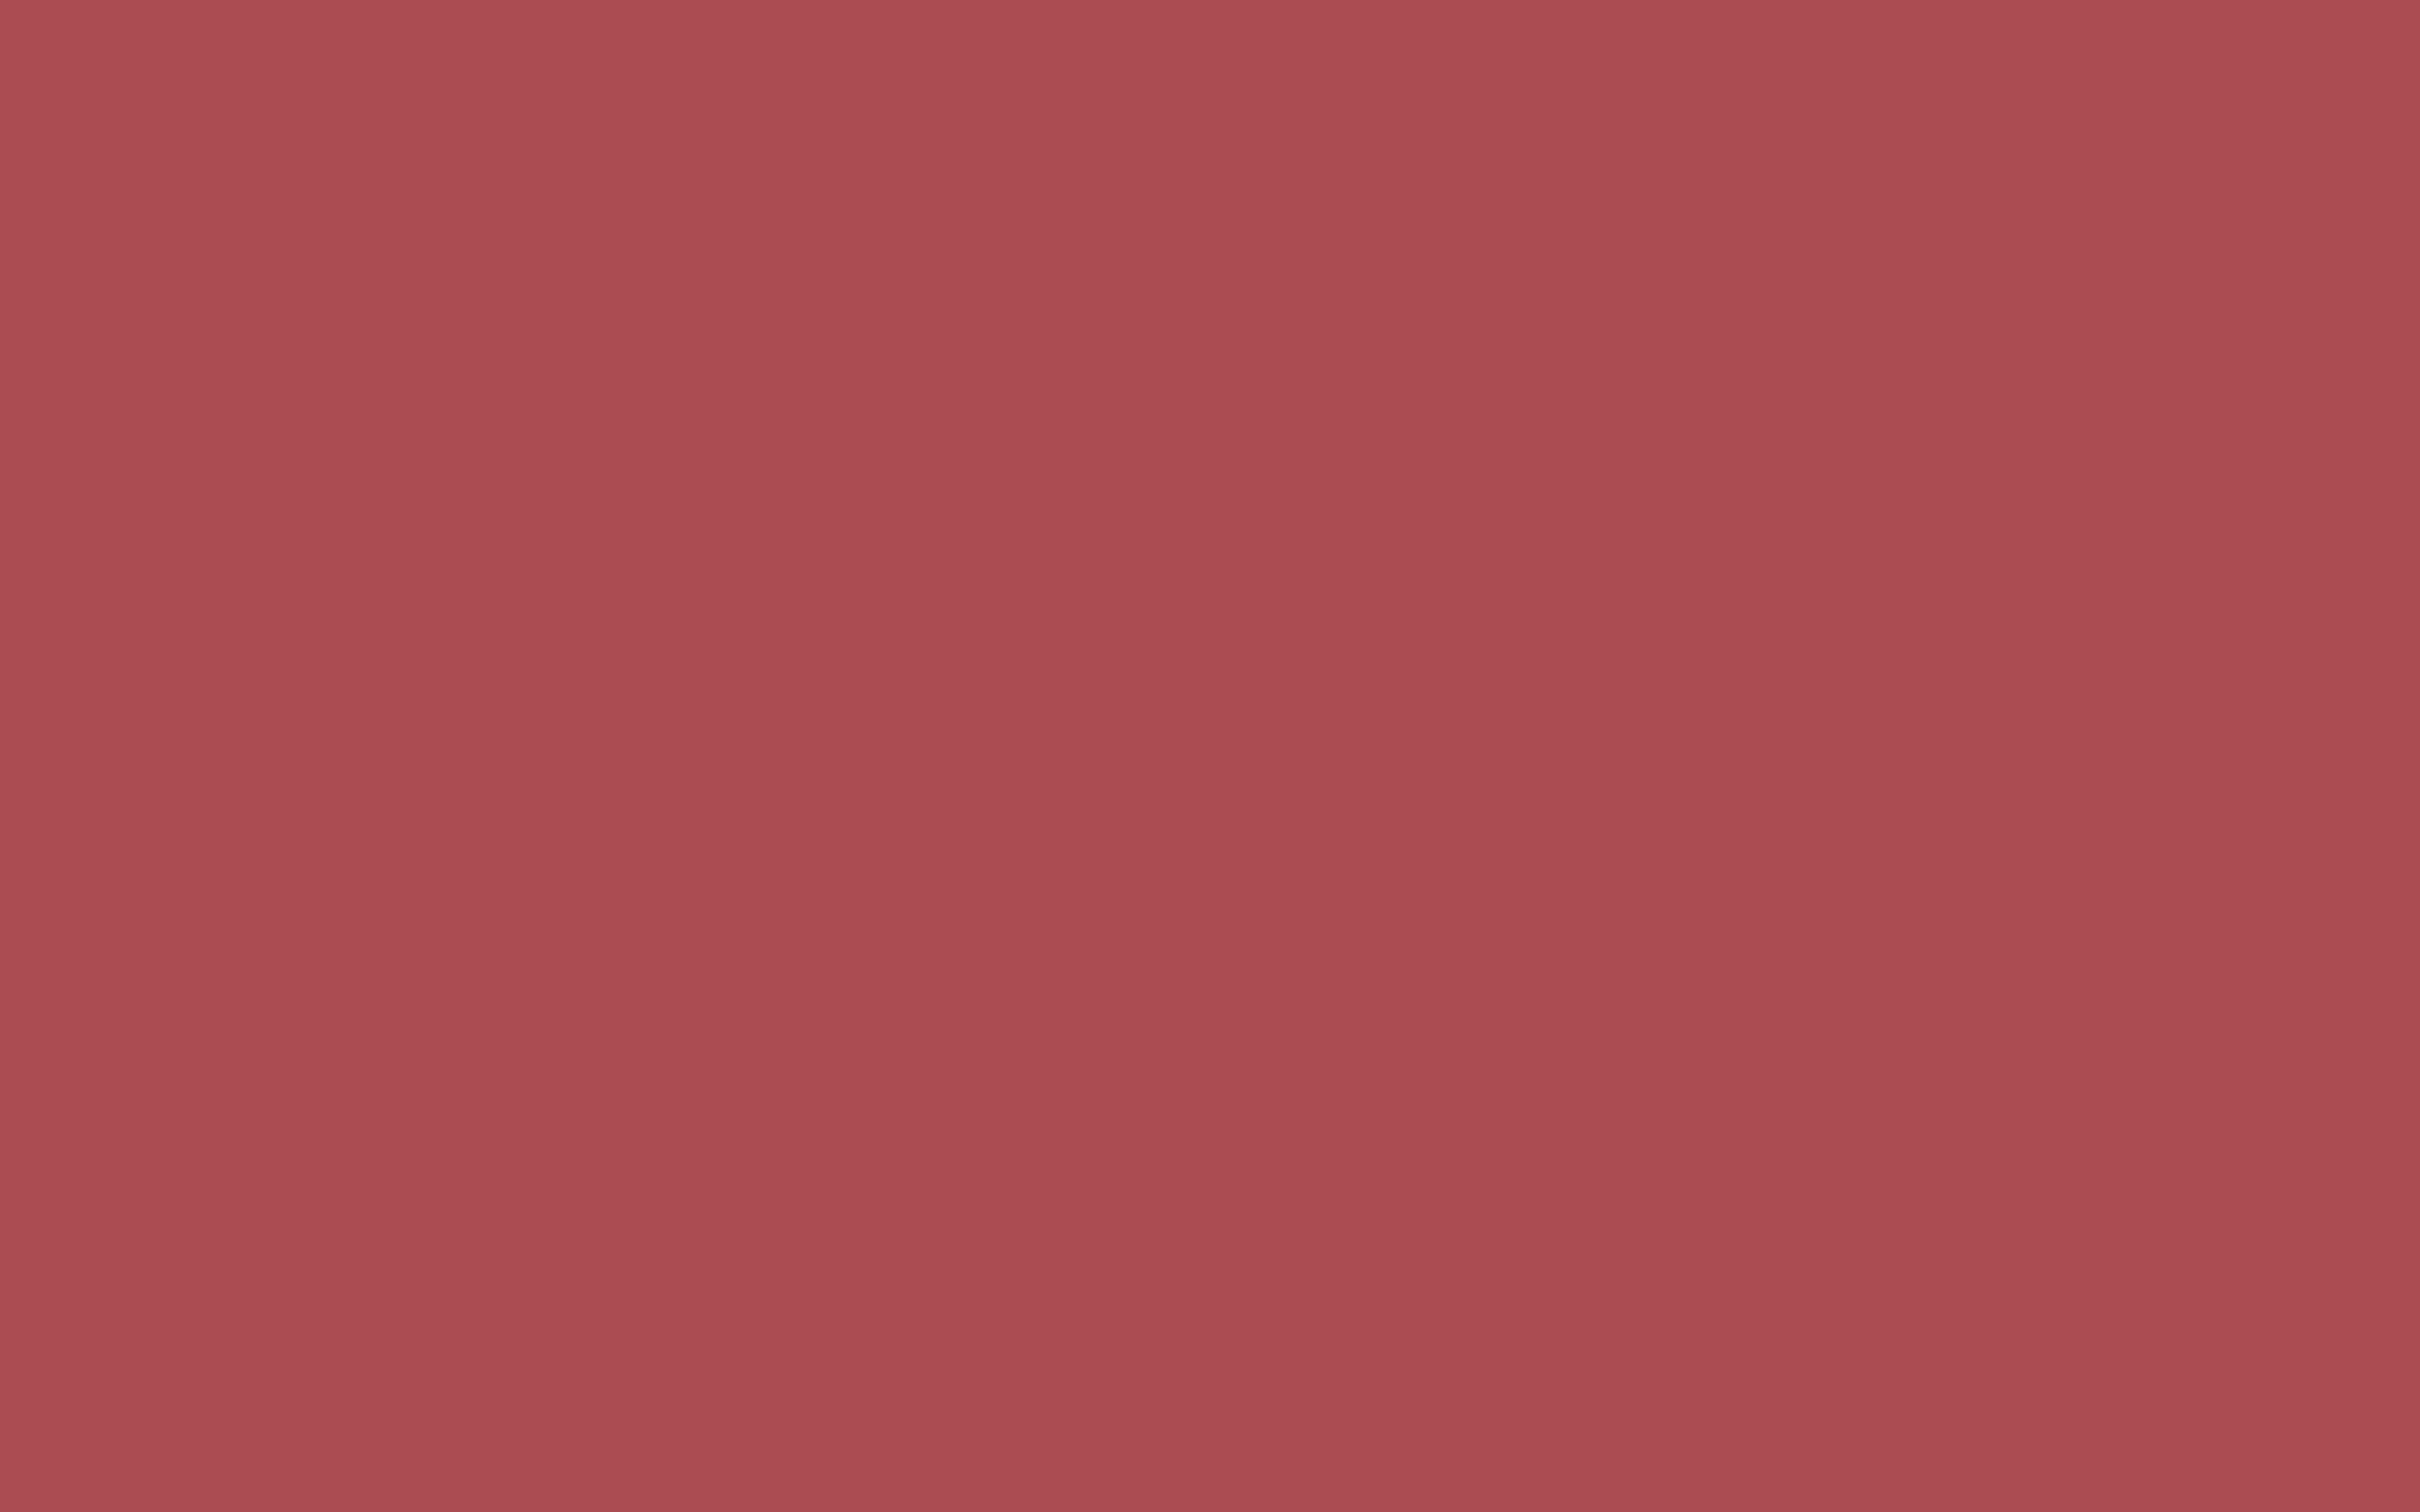 2560x1600 English Red Solid Color Background